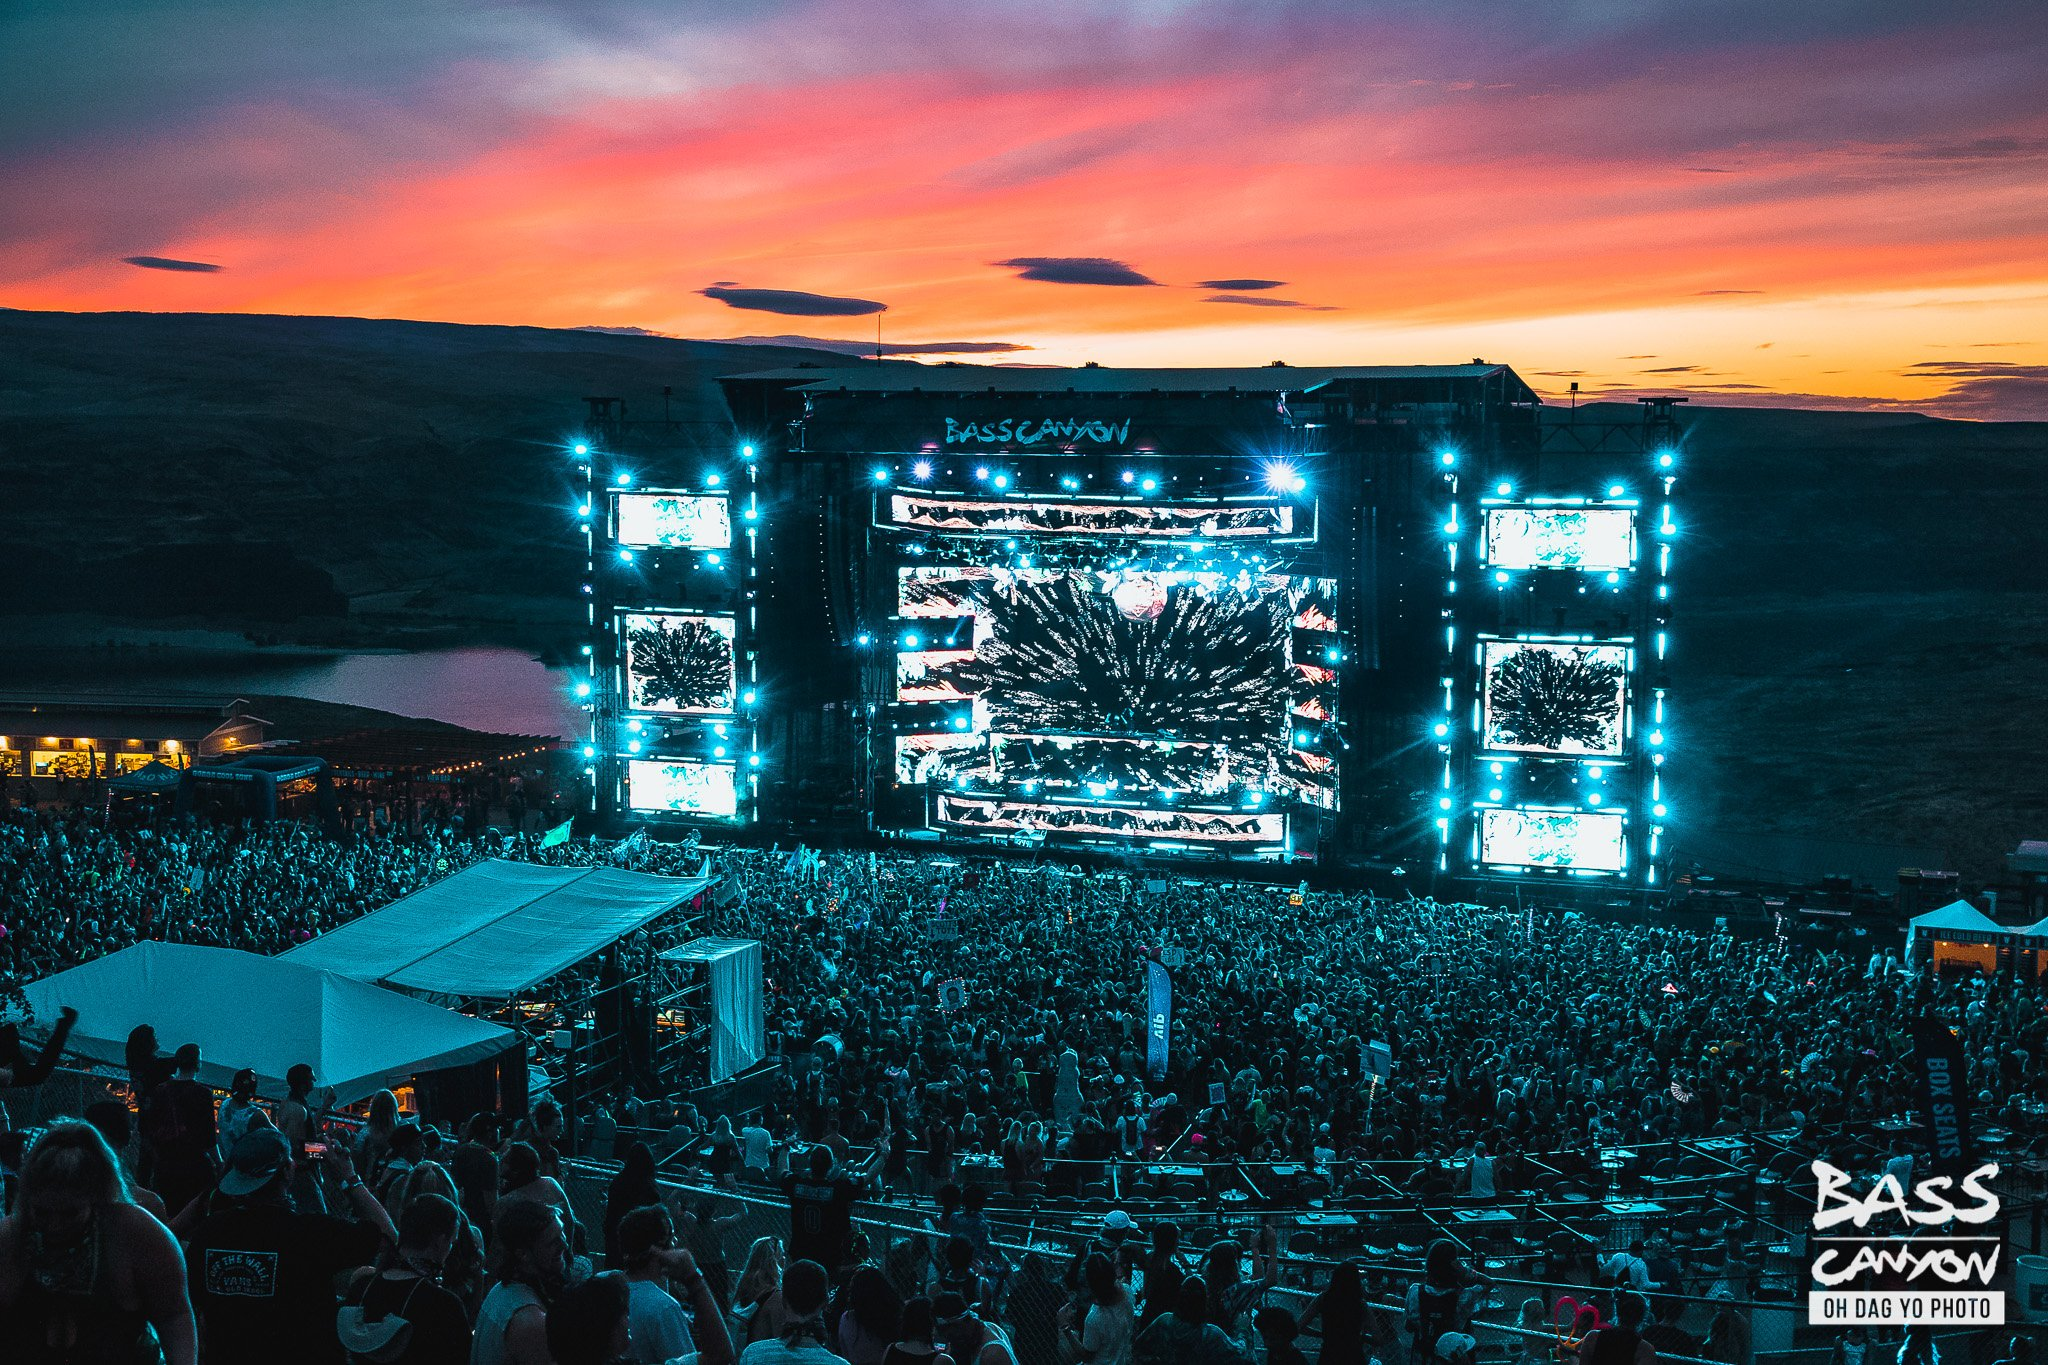 Bass Canyon 2020